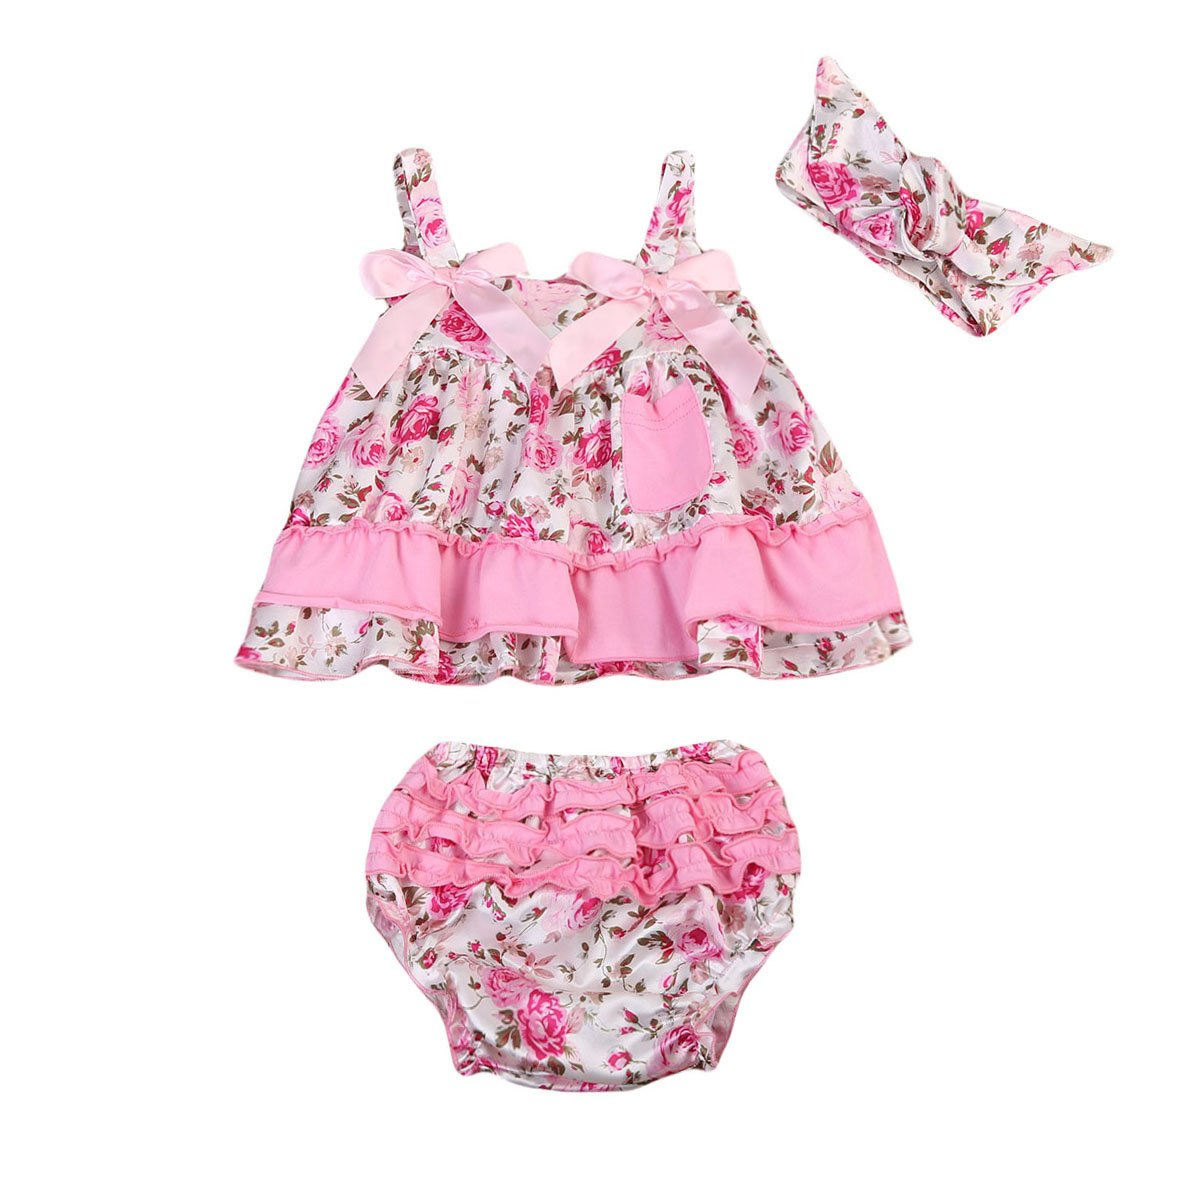 c82aefbfe4b4 Baby Clothing Kids Baby Girls Floral Ruffles Sleeveless Tops + Triangle  shorts+ Headband Outfit Clothes